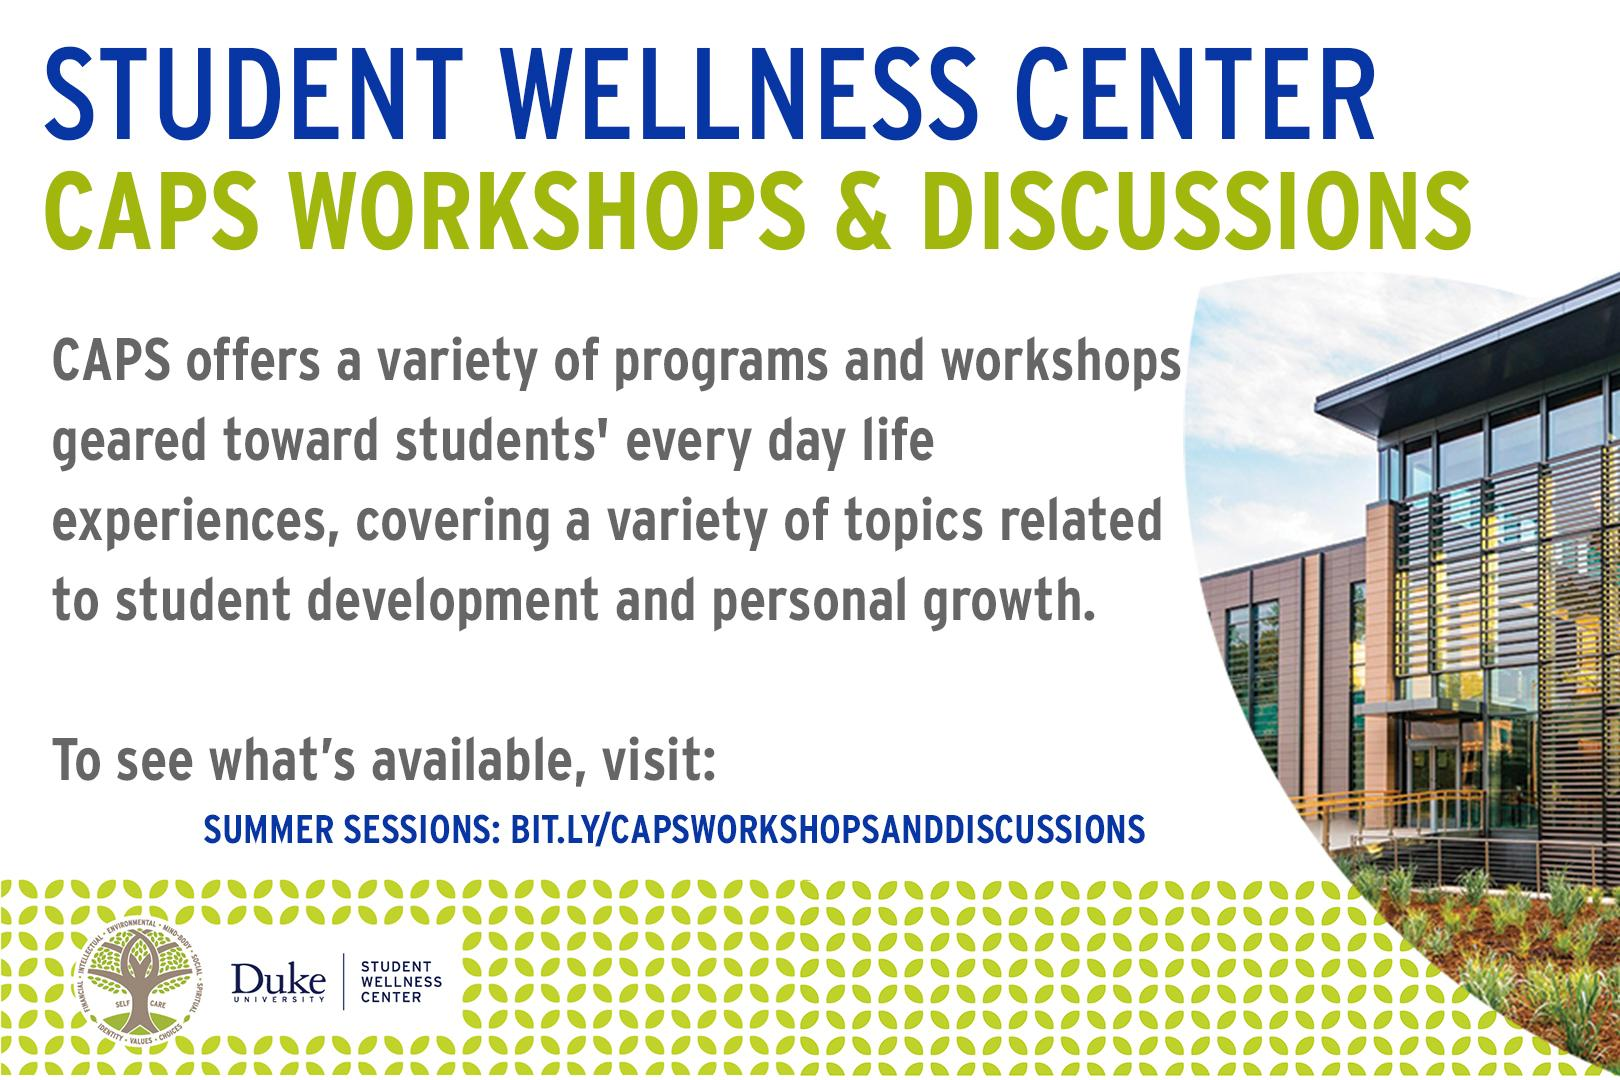 Poster of Student Wellness Center CAPS Workshops and Discussions